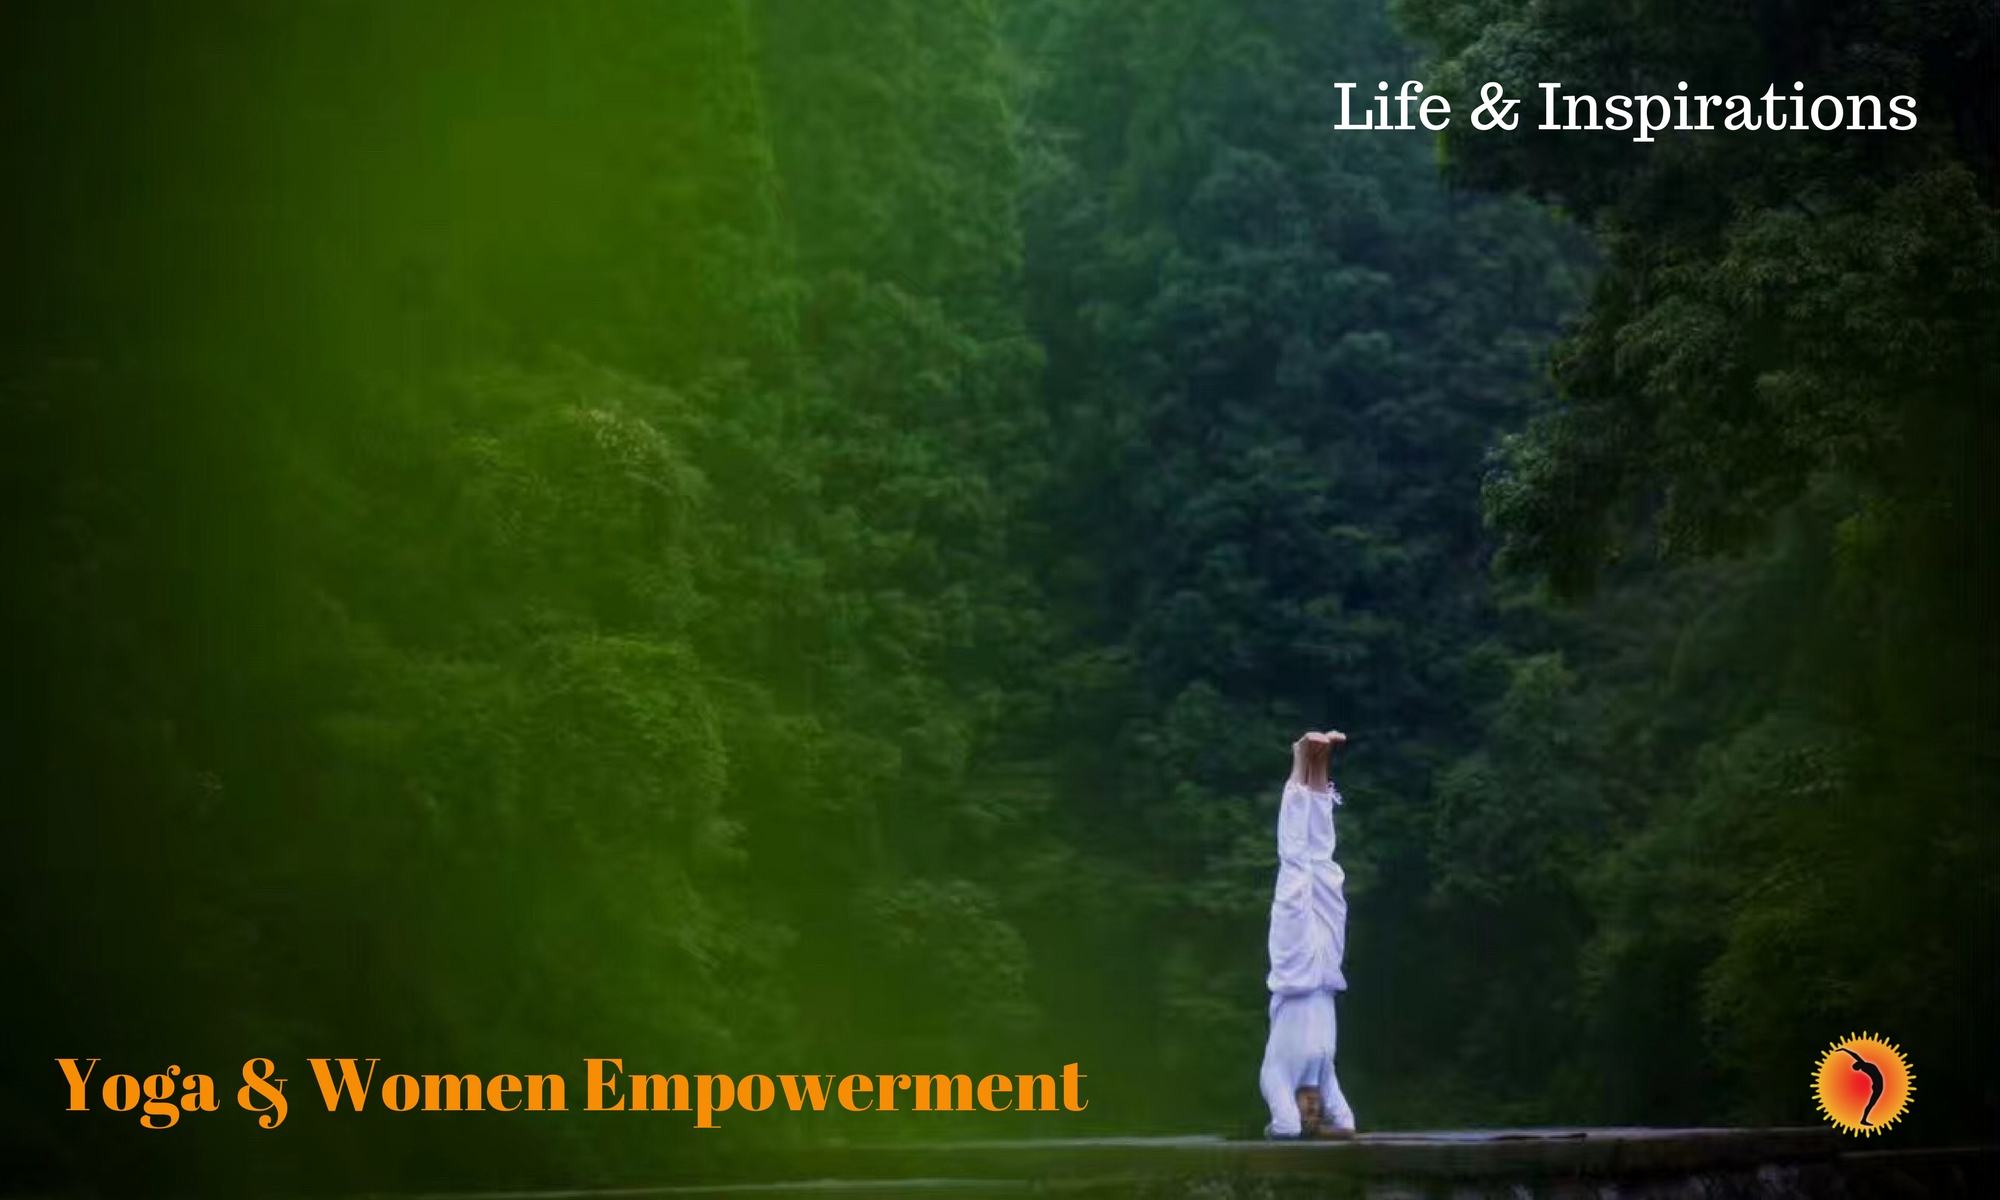 Yoga & Women Empowerment